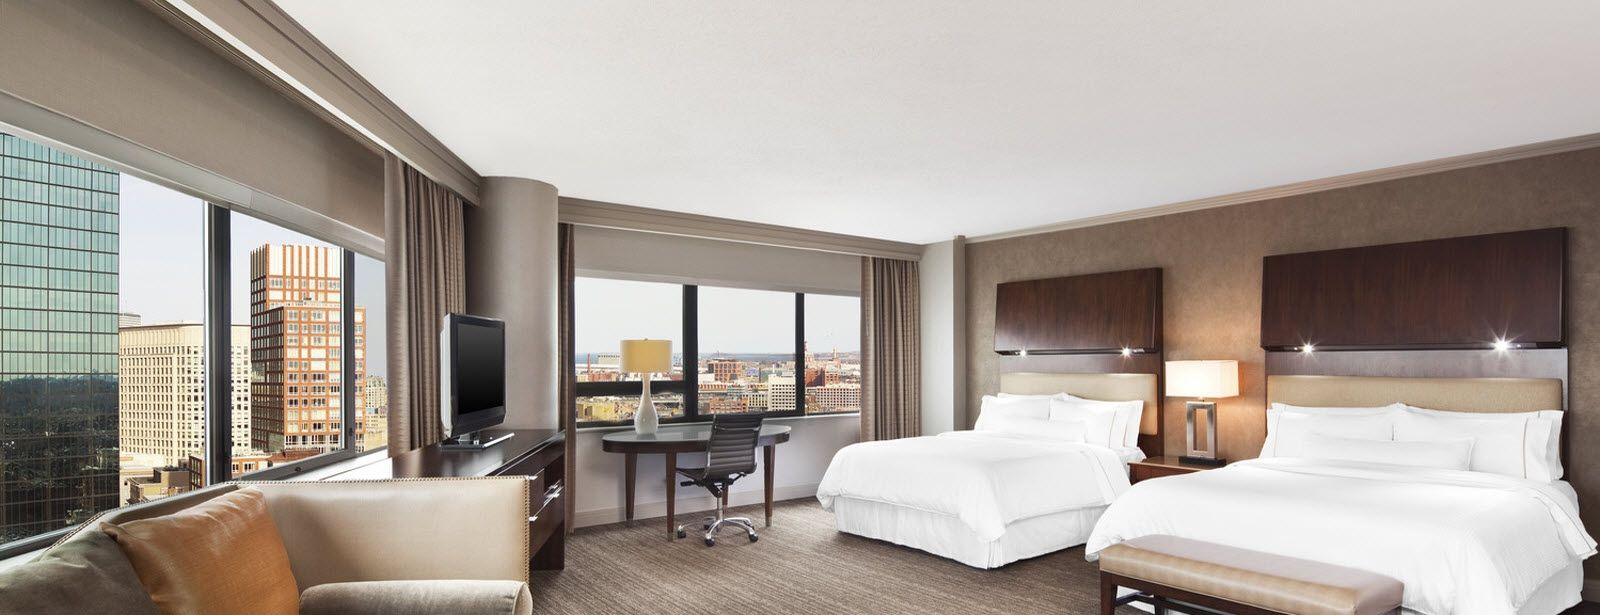 The Westin Copley Place, Boston studio suite